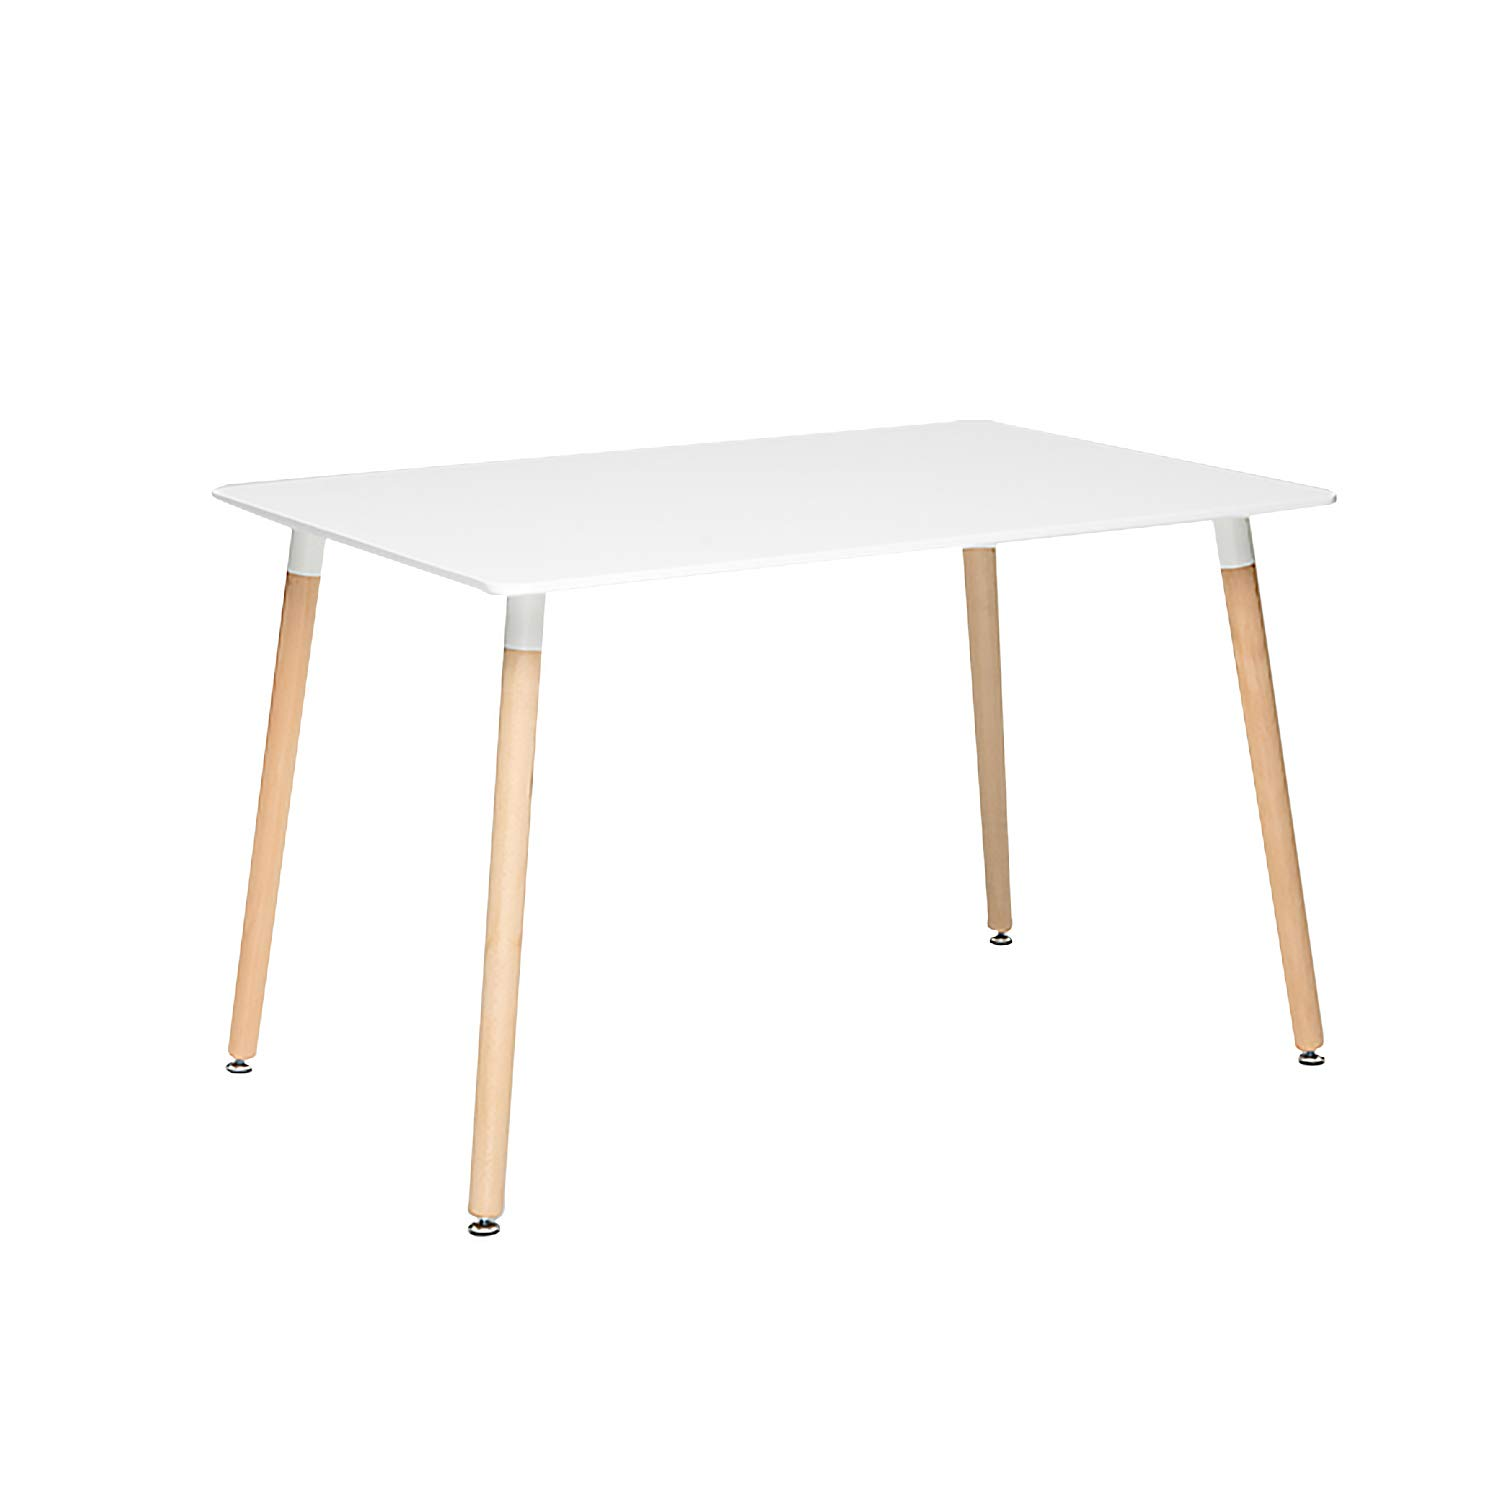 ME2 Kitchen Rectangular Table,Modern 47.2''x 31.5''Leisure Cofffee Table,Office Conference Desk with Wooden Legs and White Top for Kitchen Dining Room.White by ME2